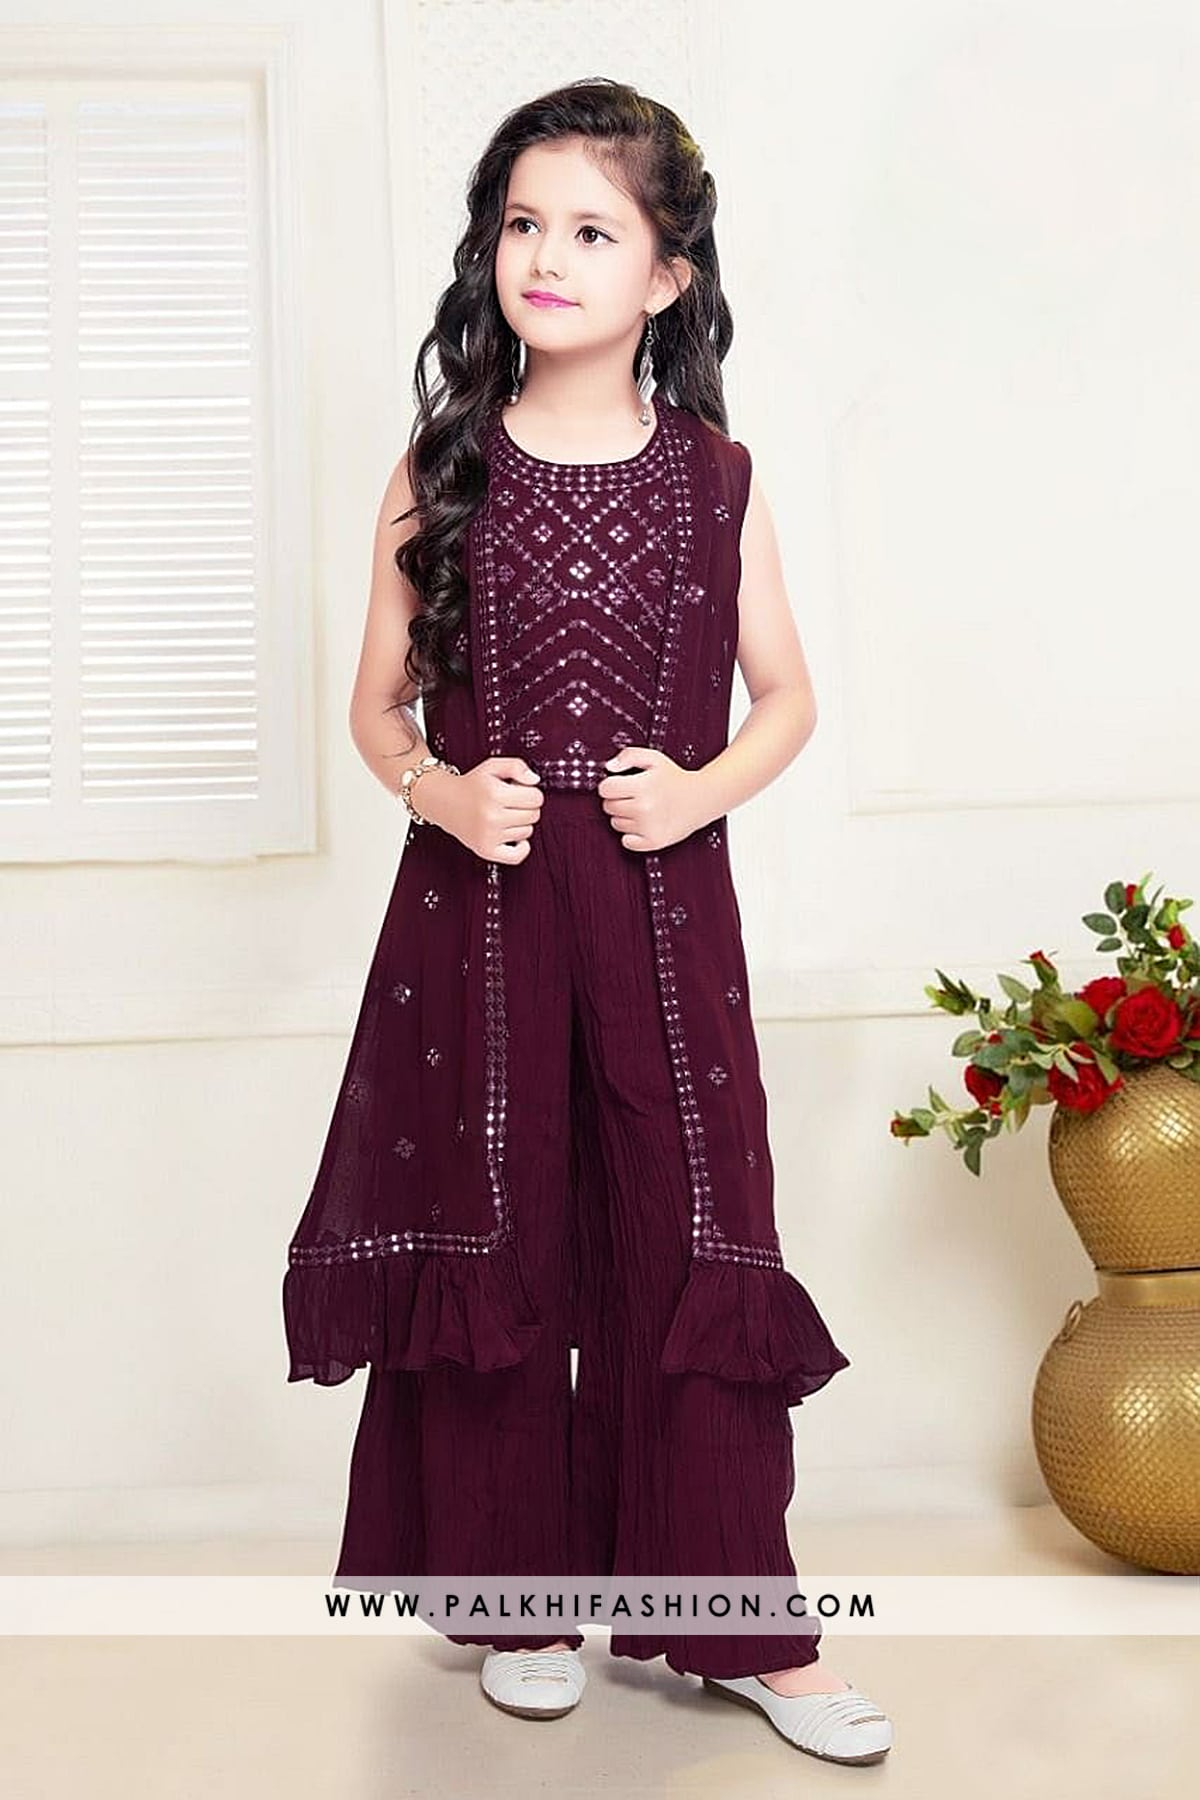 Stunning Jacket Style Girls Outfit With Beautiful Designs-Palkhi Fashion